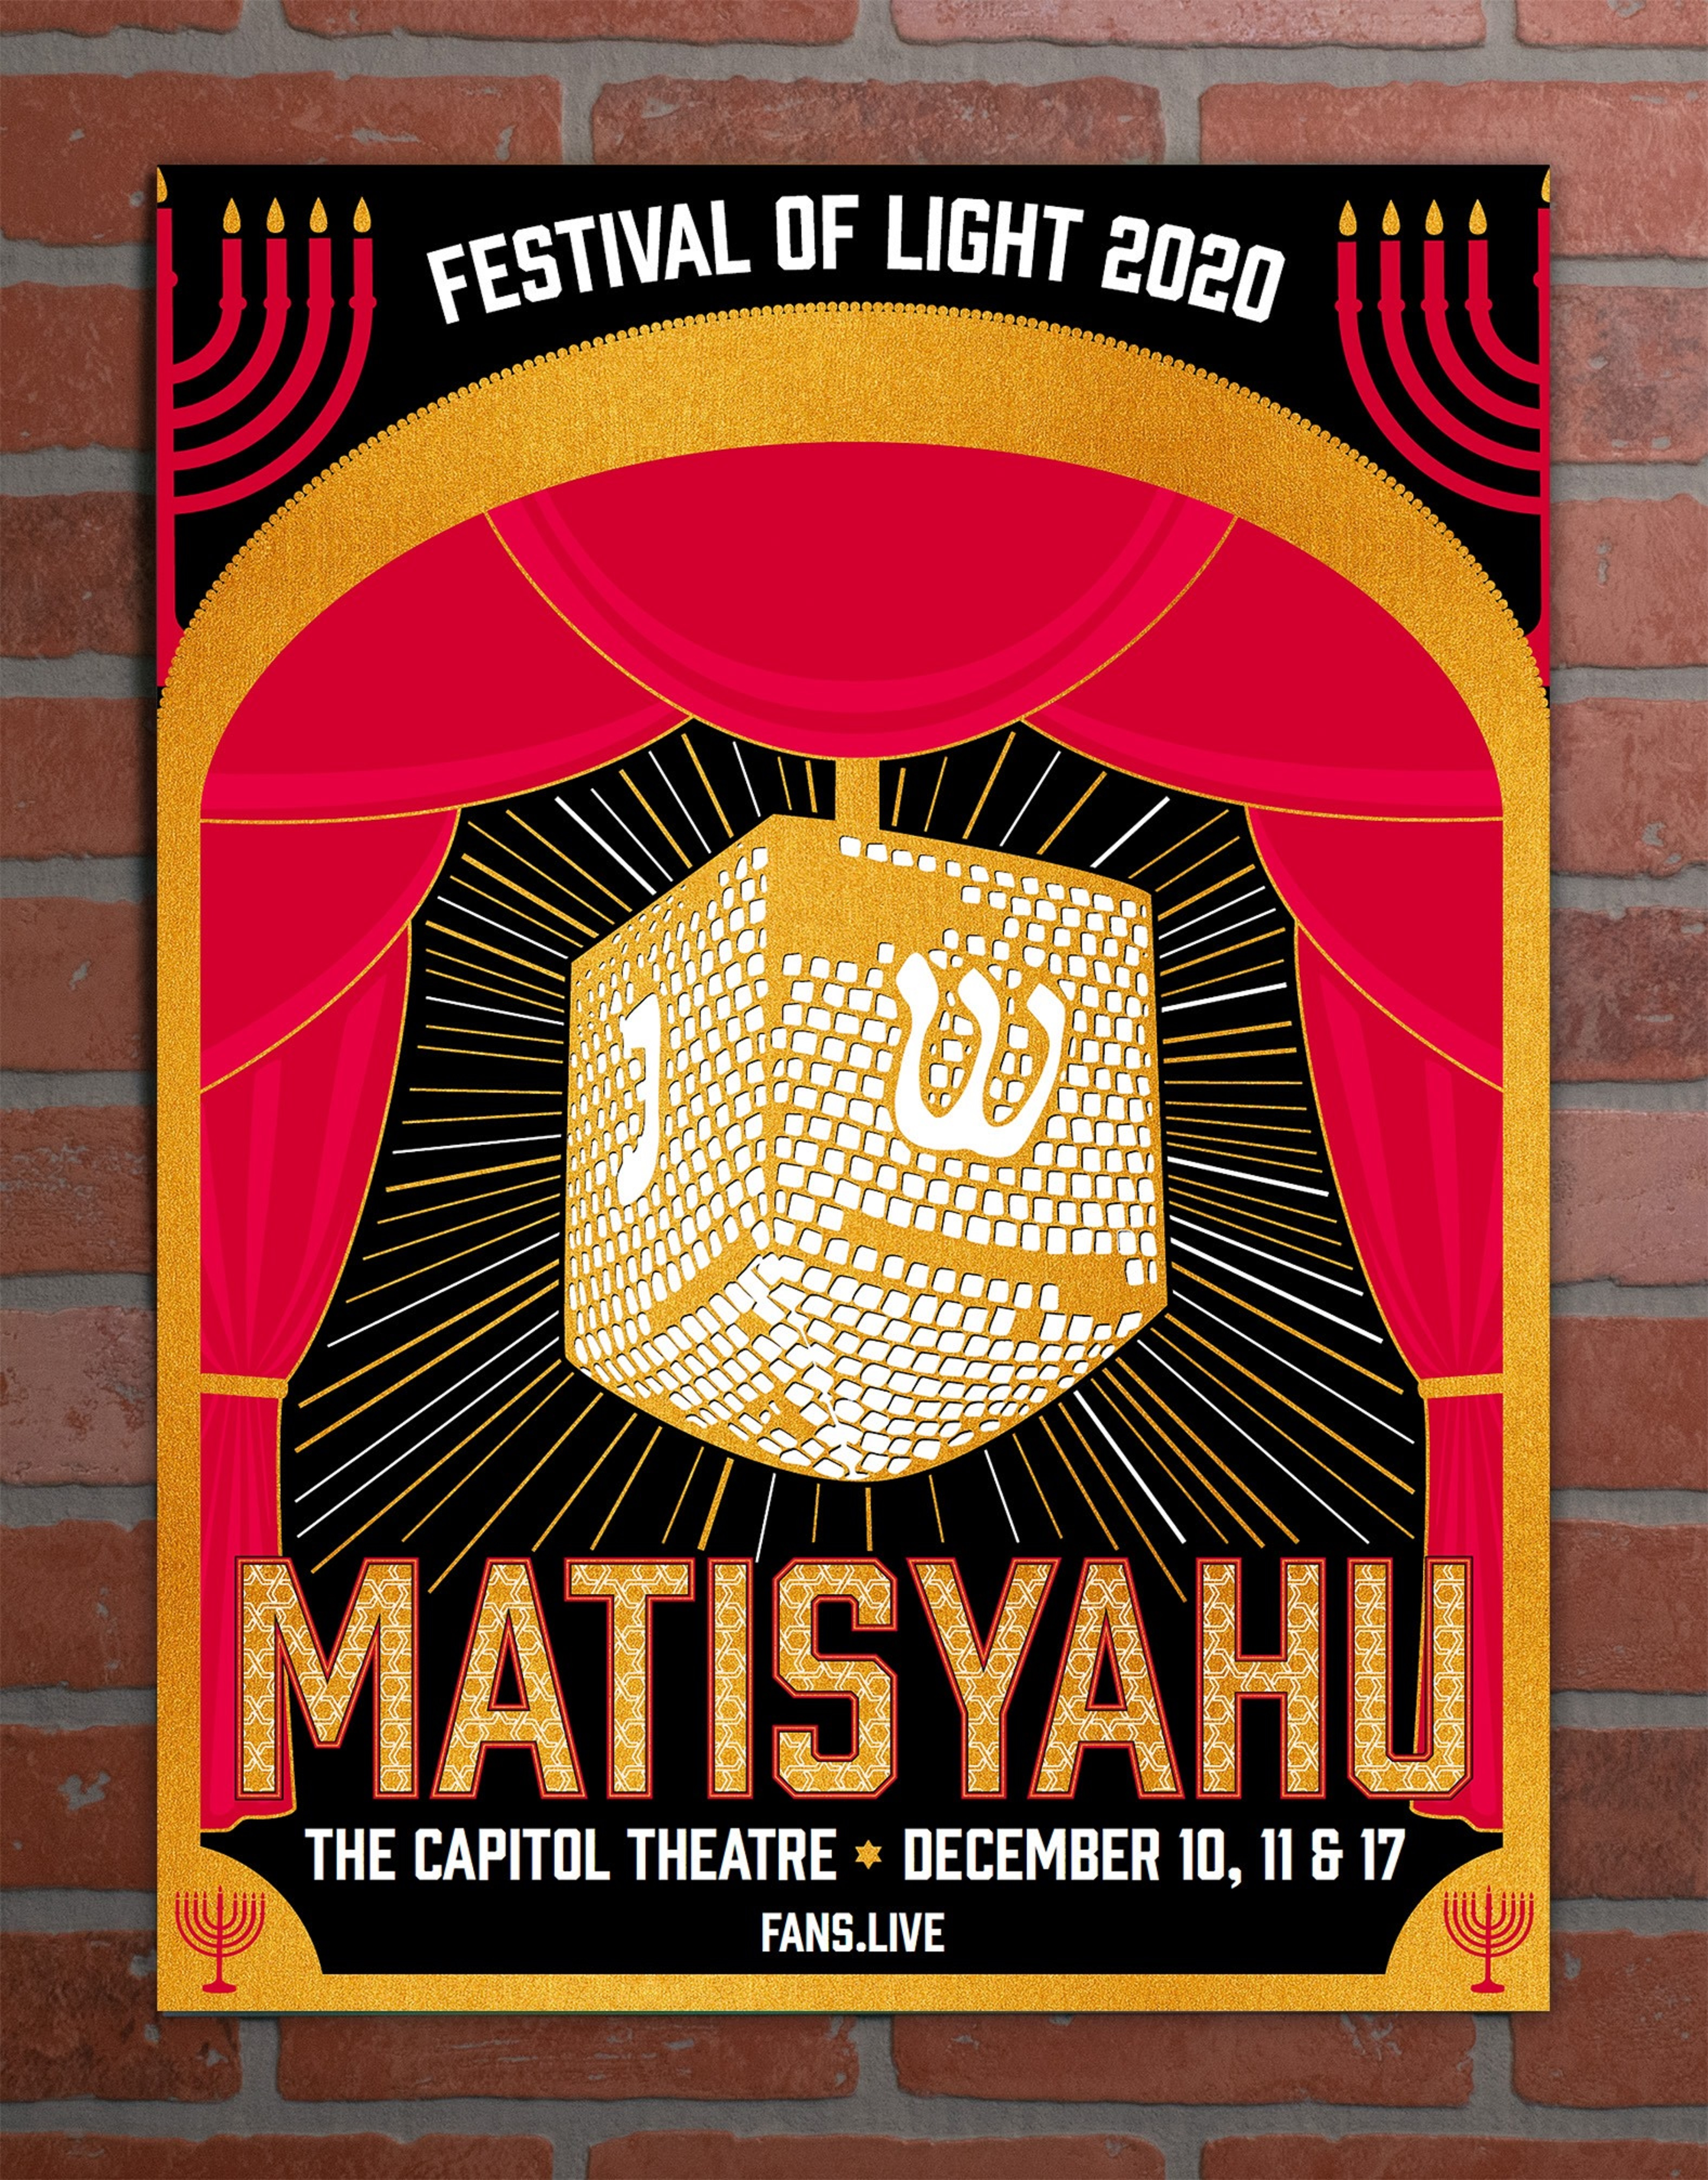 Matisyahu Festival of Light 2020 Livestream on FANS